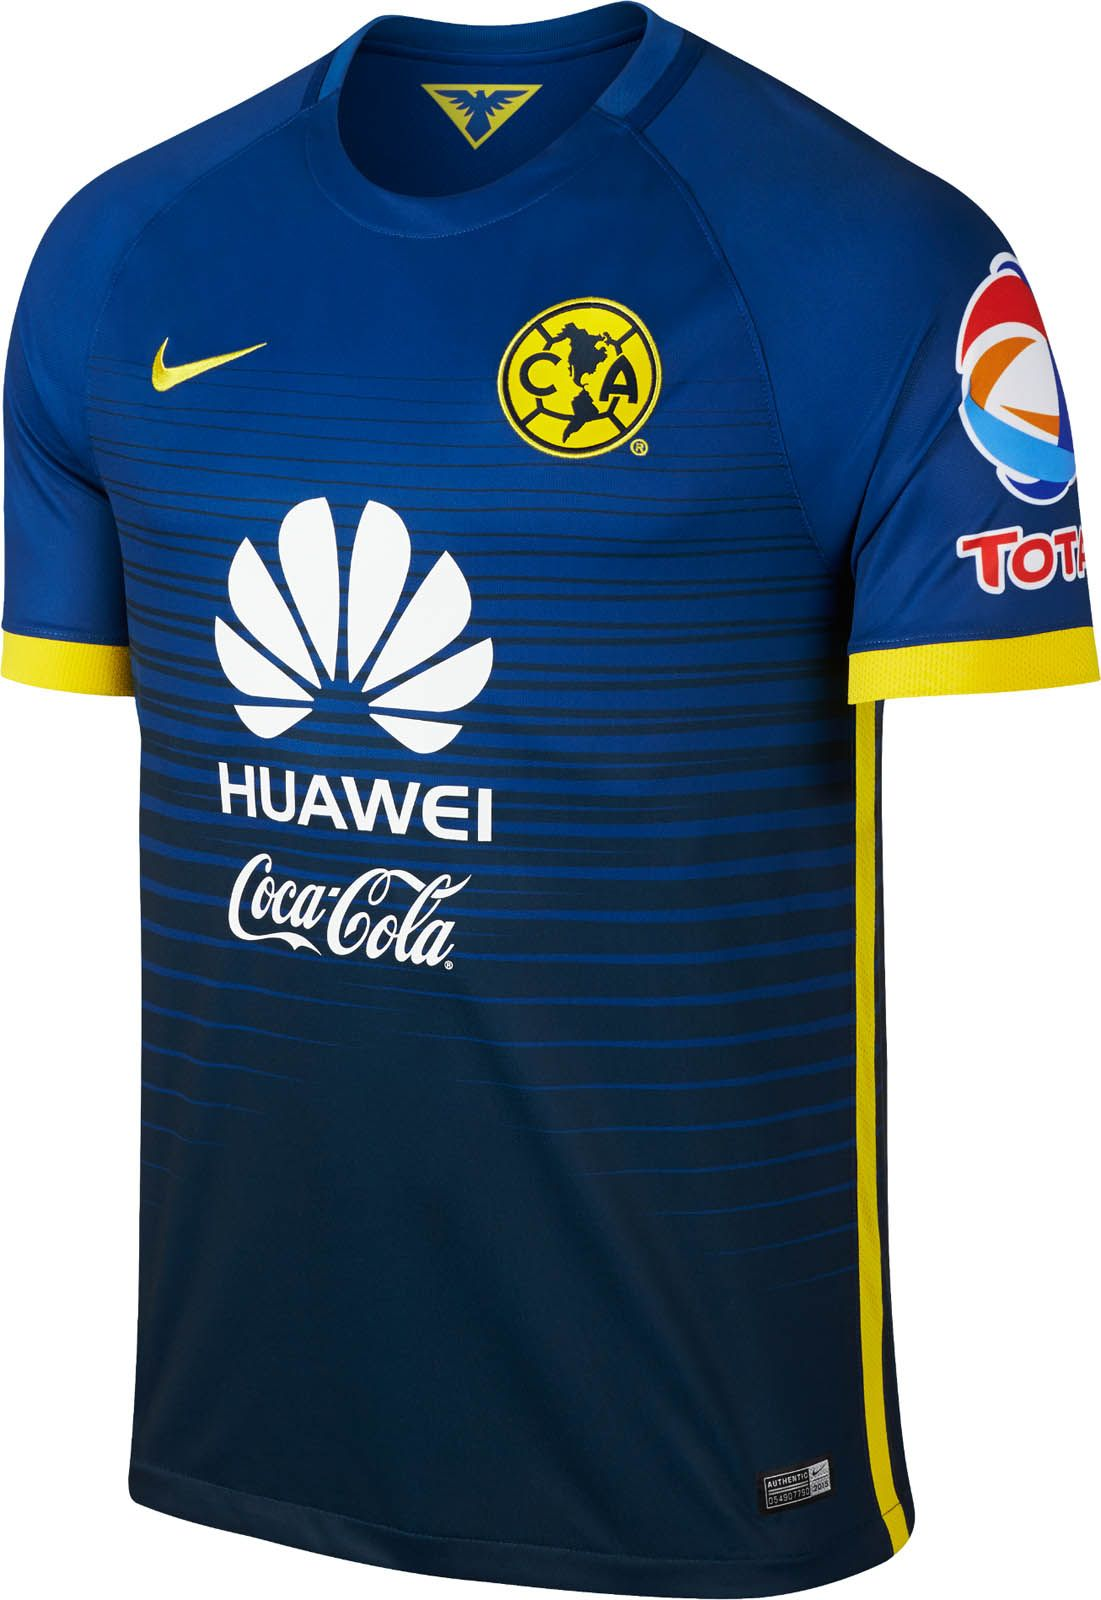 Club de Fútbol América (Mexico) - 2015 2016 Nike Away Shirt  c42037b4cf574